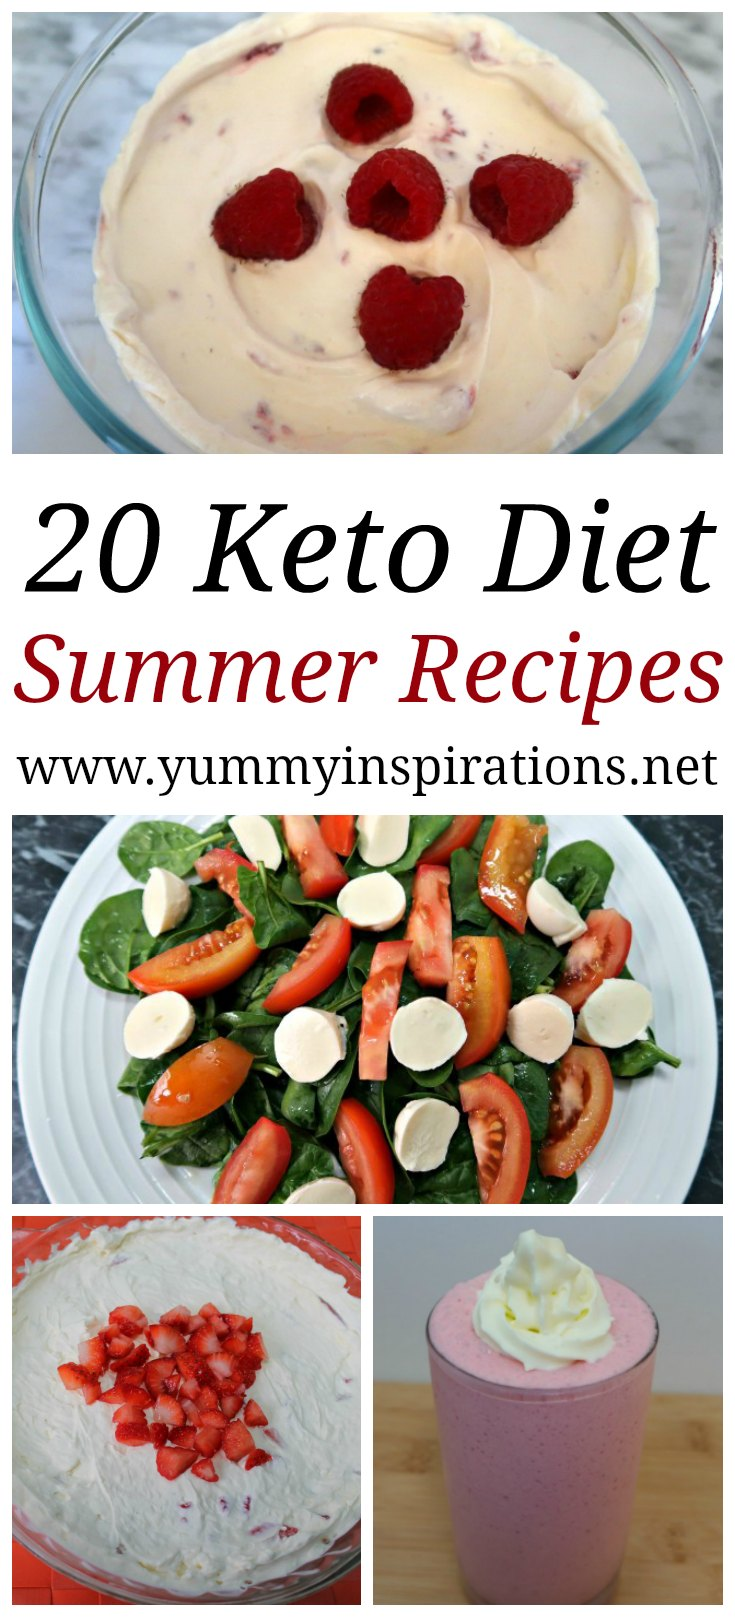 20 Keto Summer Recipes Easy Low Carb Ketogenic Meals Desserts